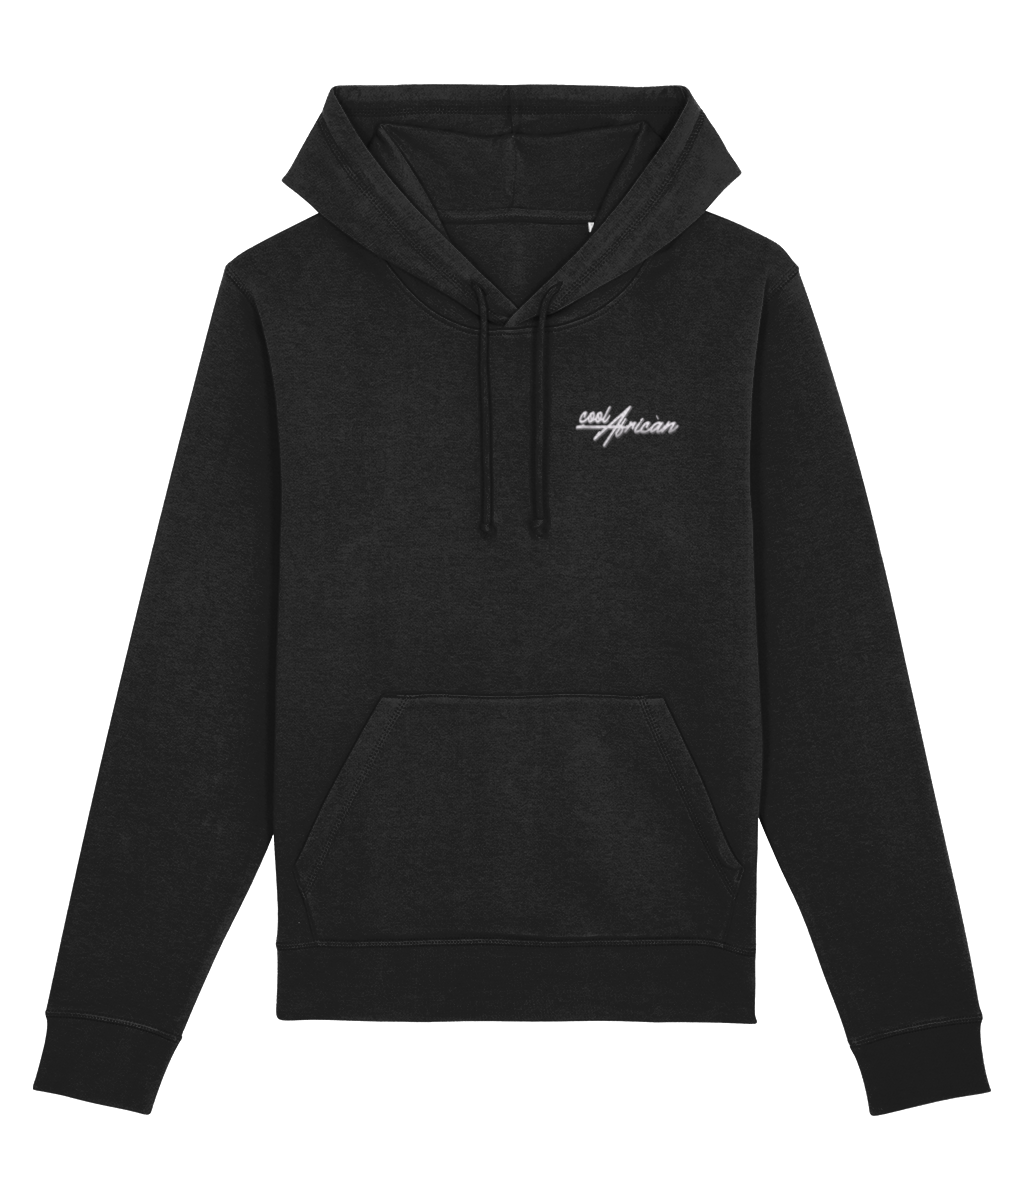 CoolAfrican Classic Logo Hoodie